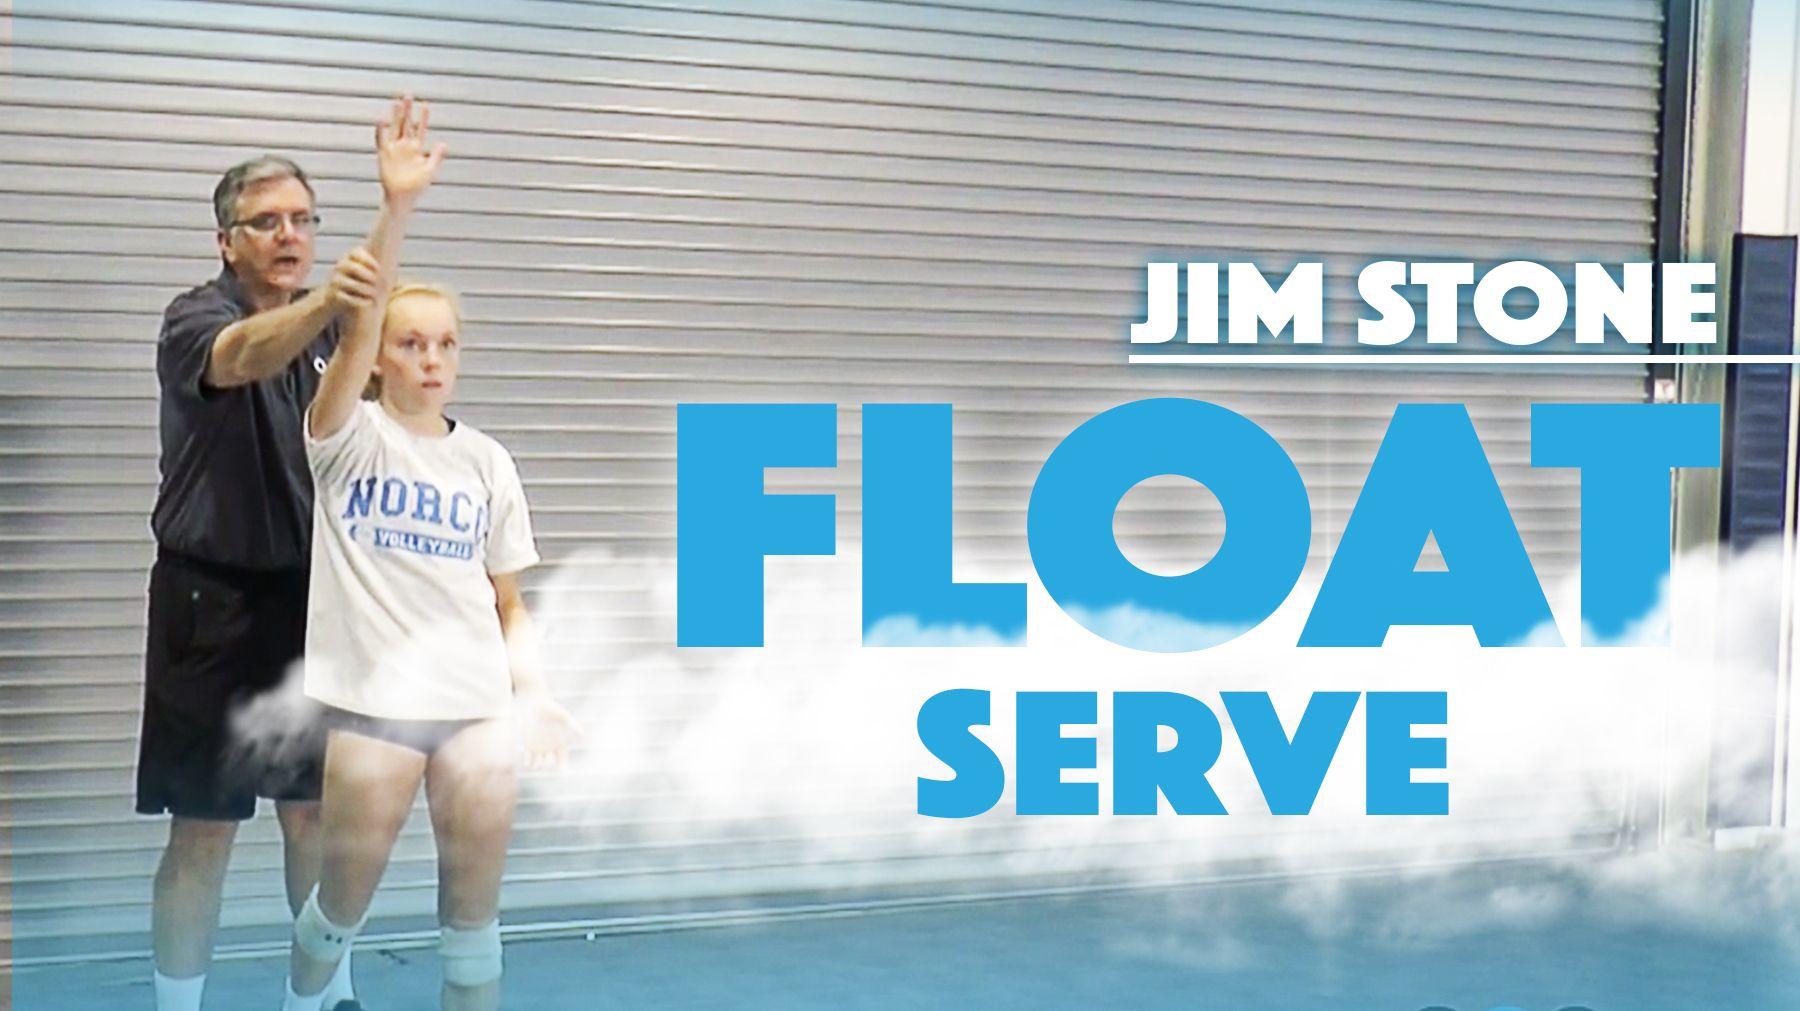 Jim Stone Mastering The Float Serve Coaching Volleyball Volleyball Training Team Coaching